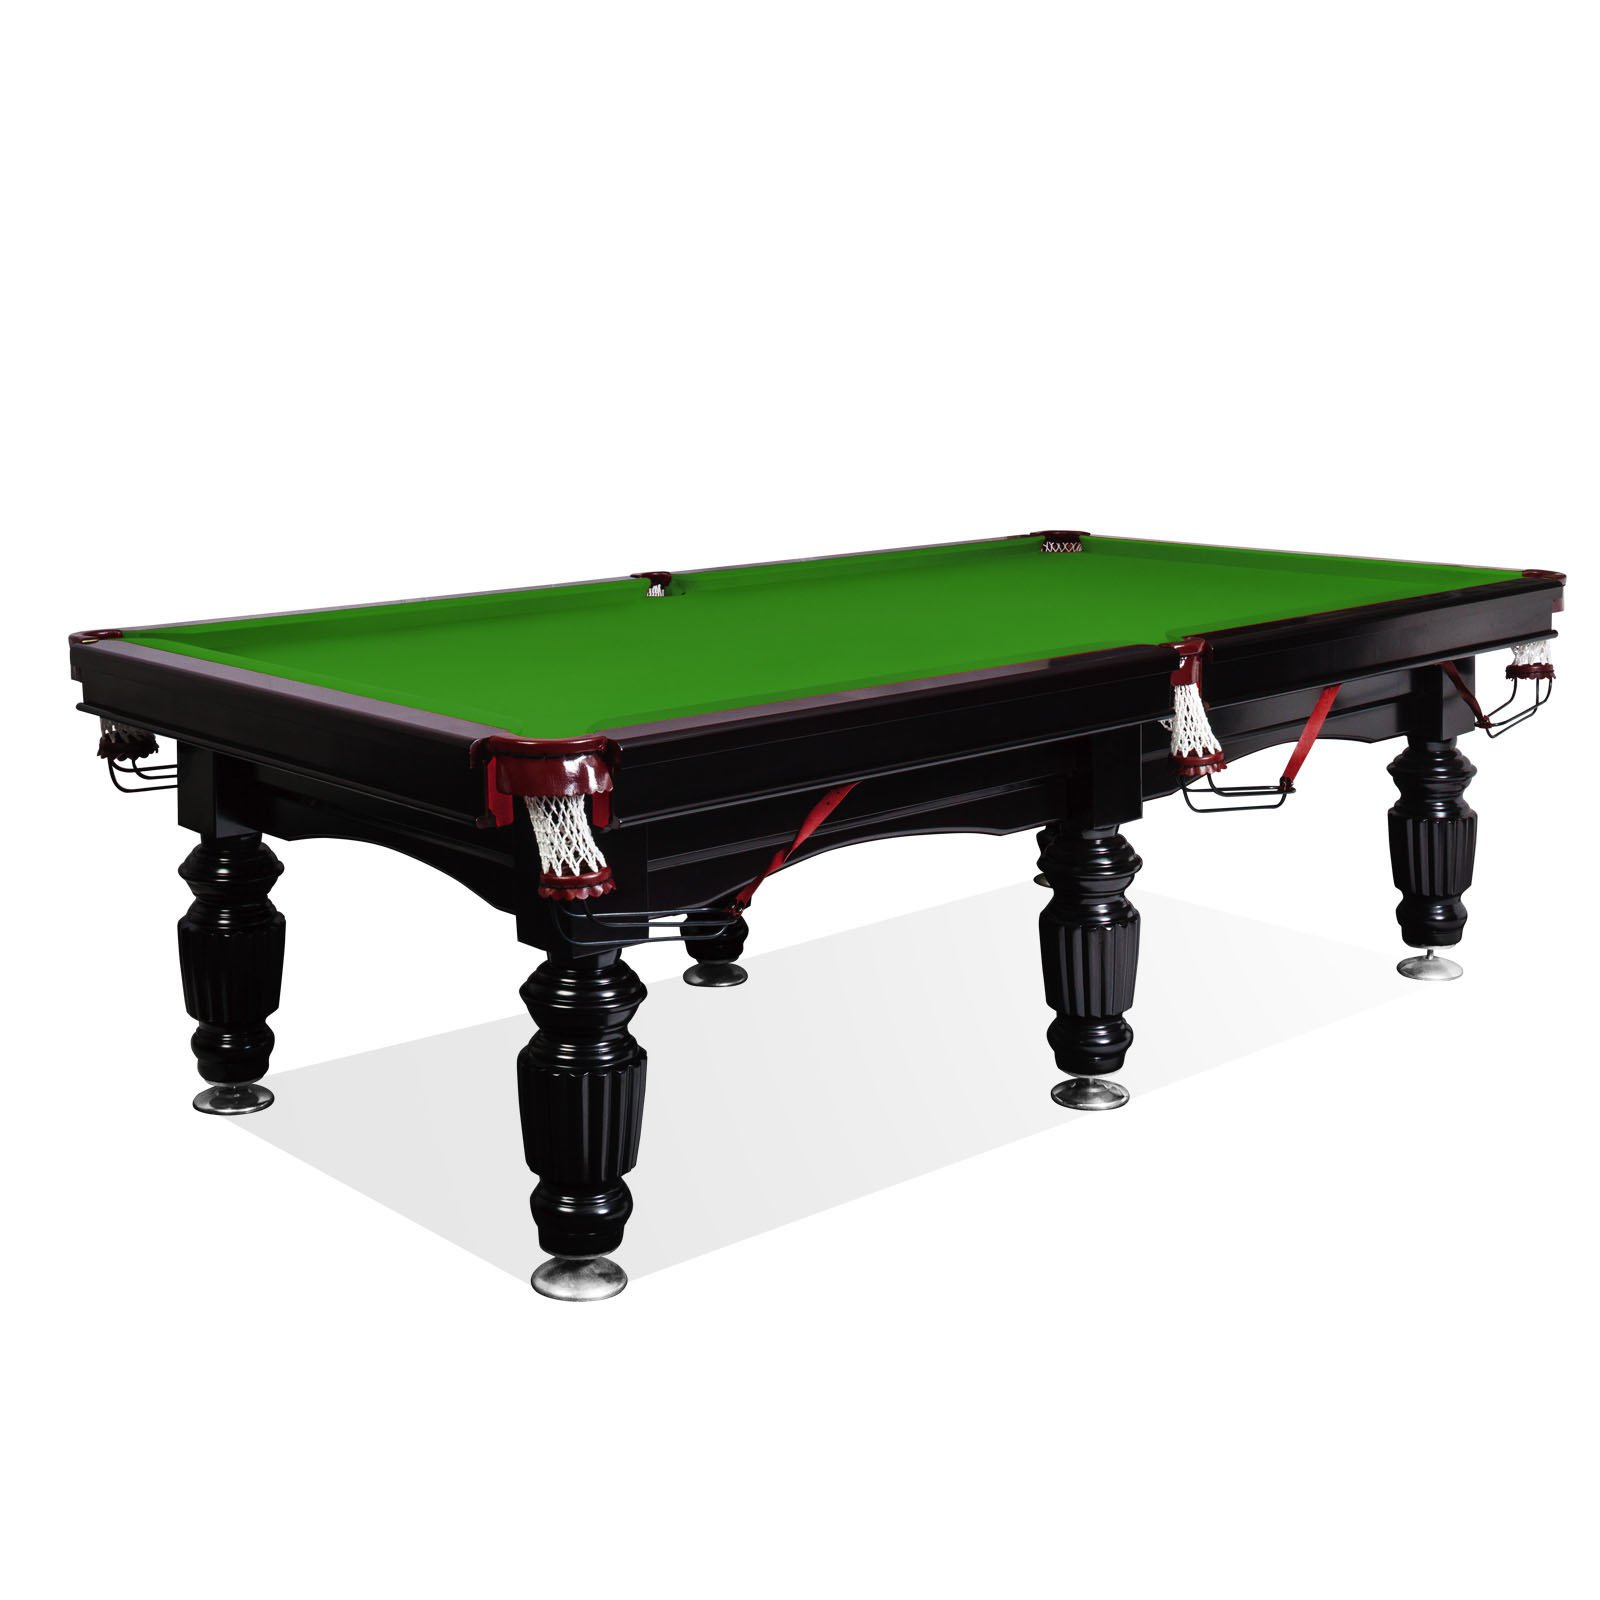 12ft Luxury 3 Piece Slate Pool Table Solid Timber Billiard Table Professional Snooker Game Table With Full Accessories Pack Black Frame Green Felt Amazon Com Au Sports Fitness Outdoors